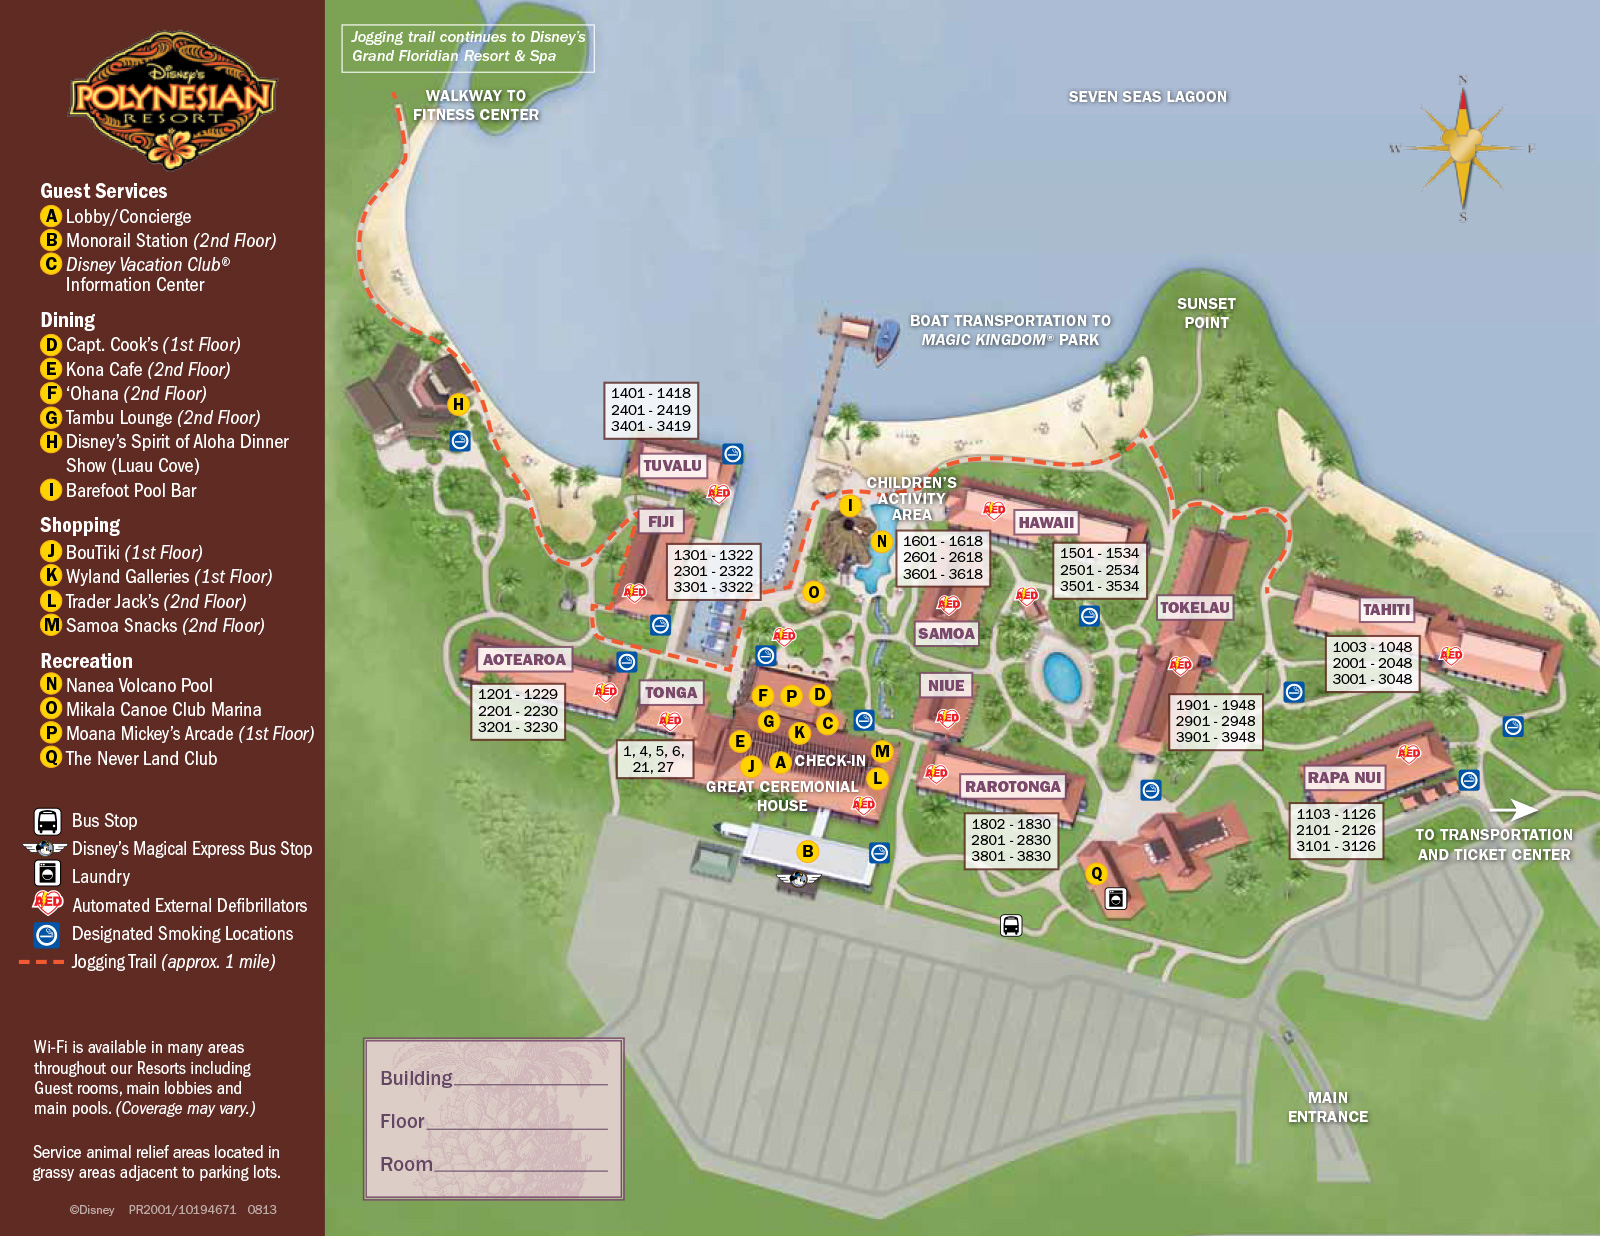 2013 polynesian resort guide map photo 1 of 1